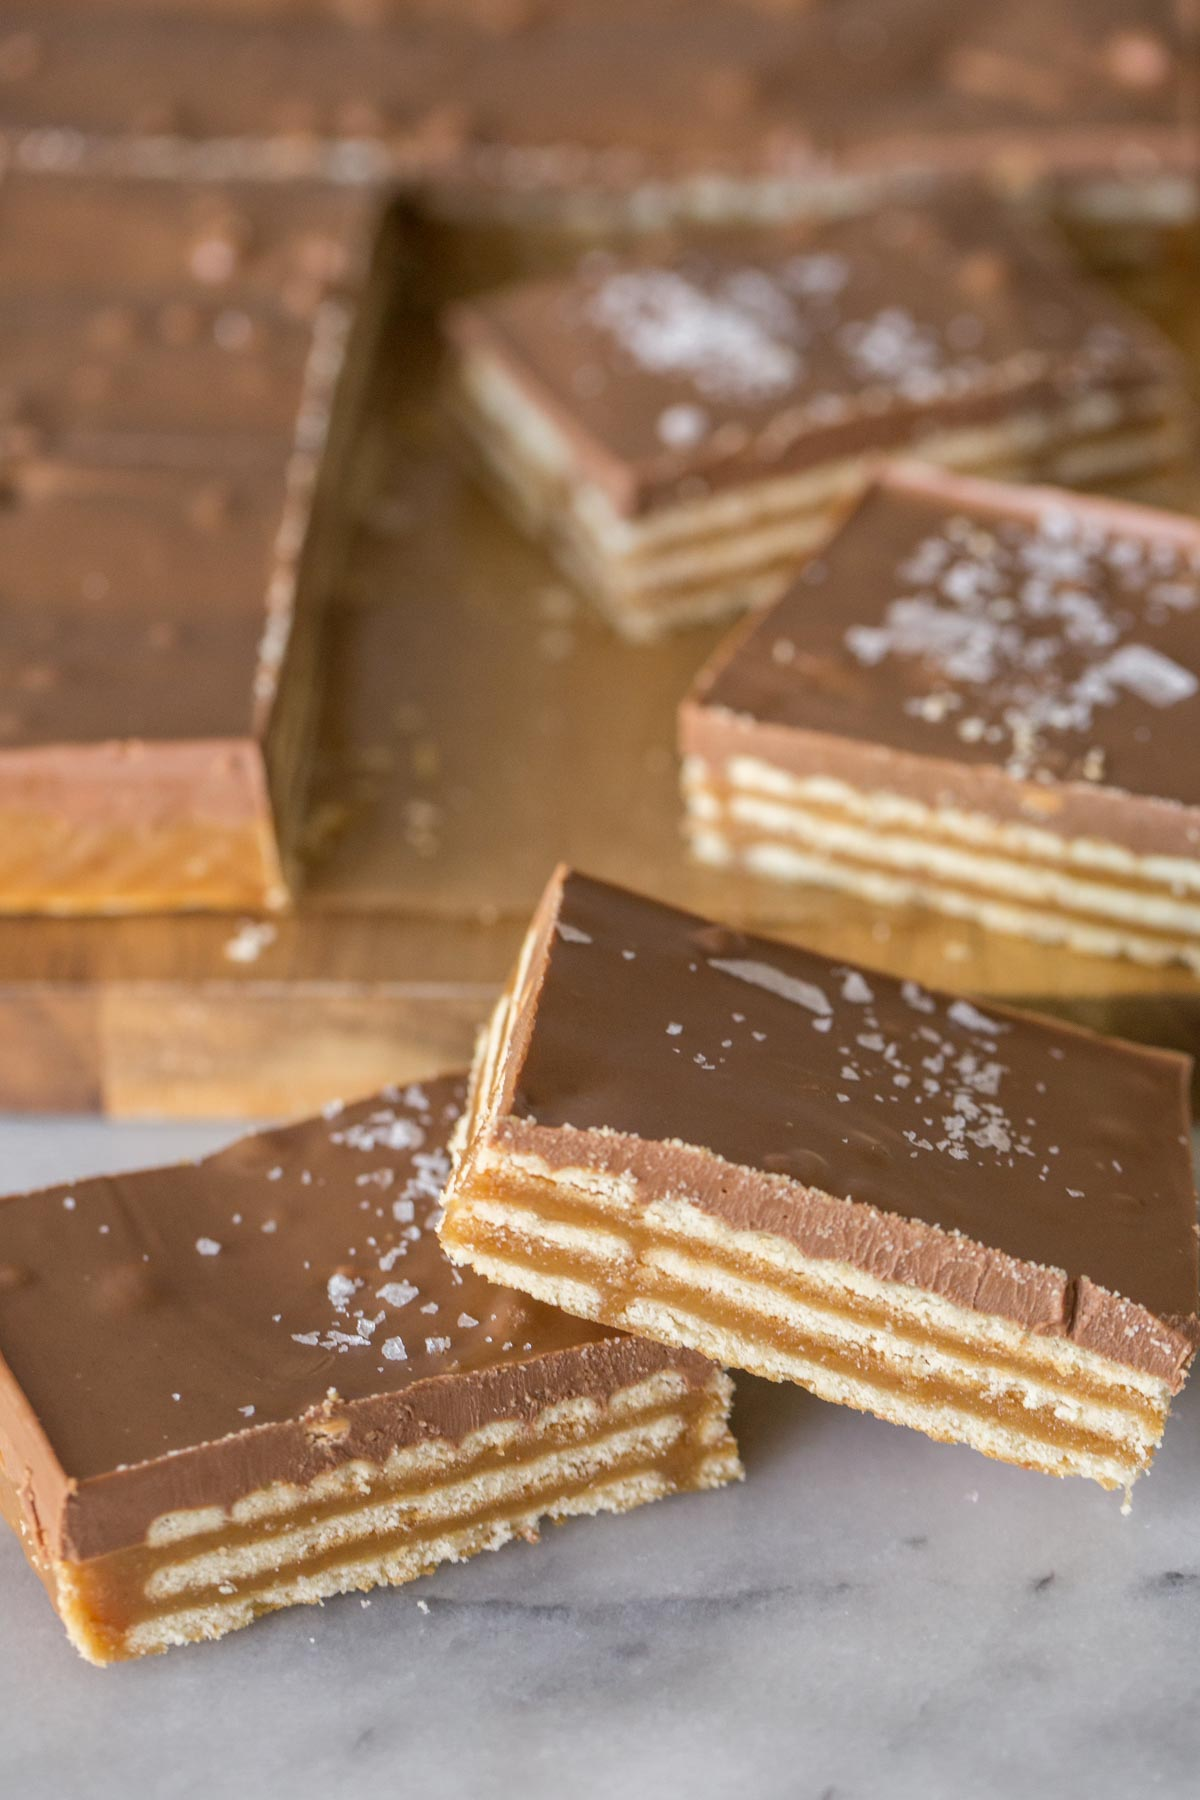 Close up view of caramel, cracker, and chocolate layer of Salt River Bars.